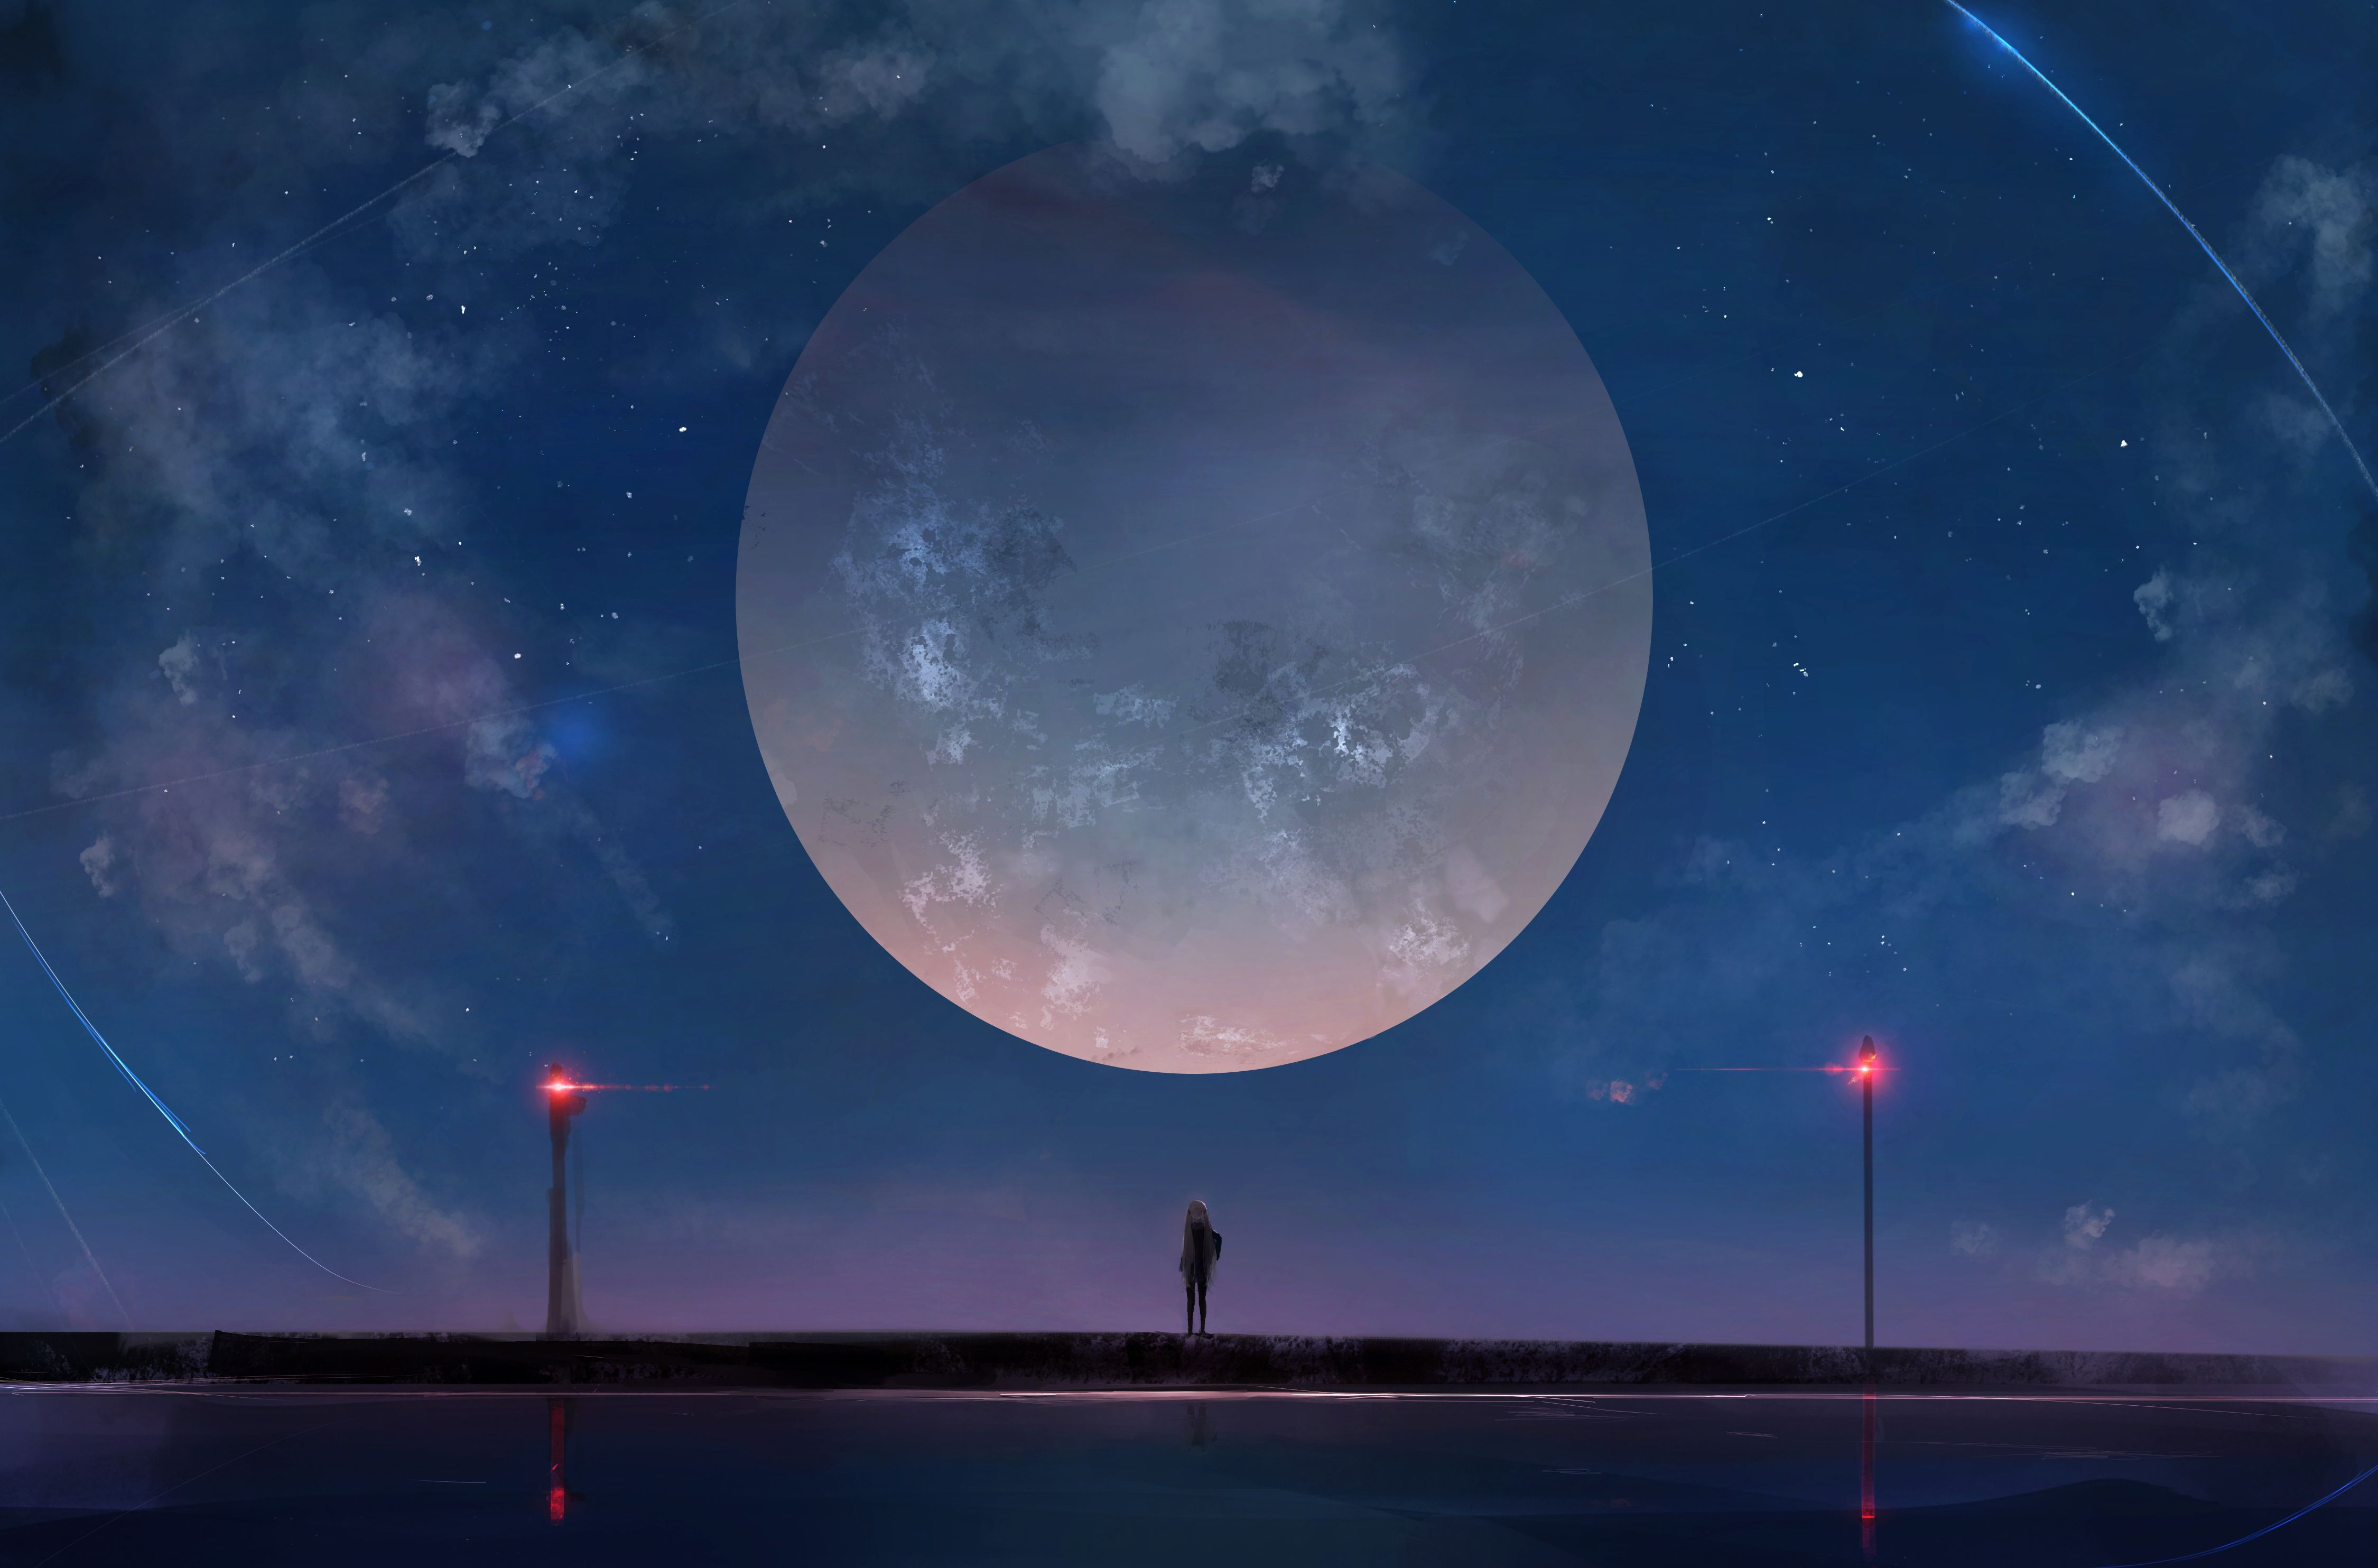 Anime Night Sky Wallpapers Top Free Anime Night Sky Backgrounds Wallpaperaccess